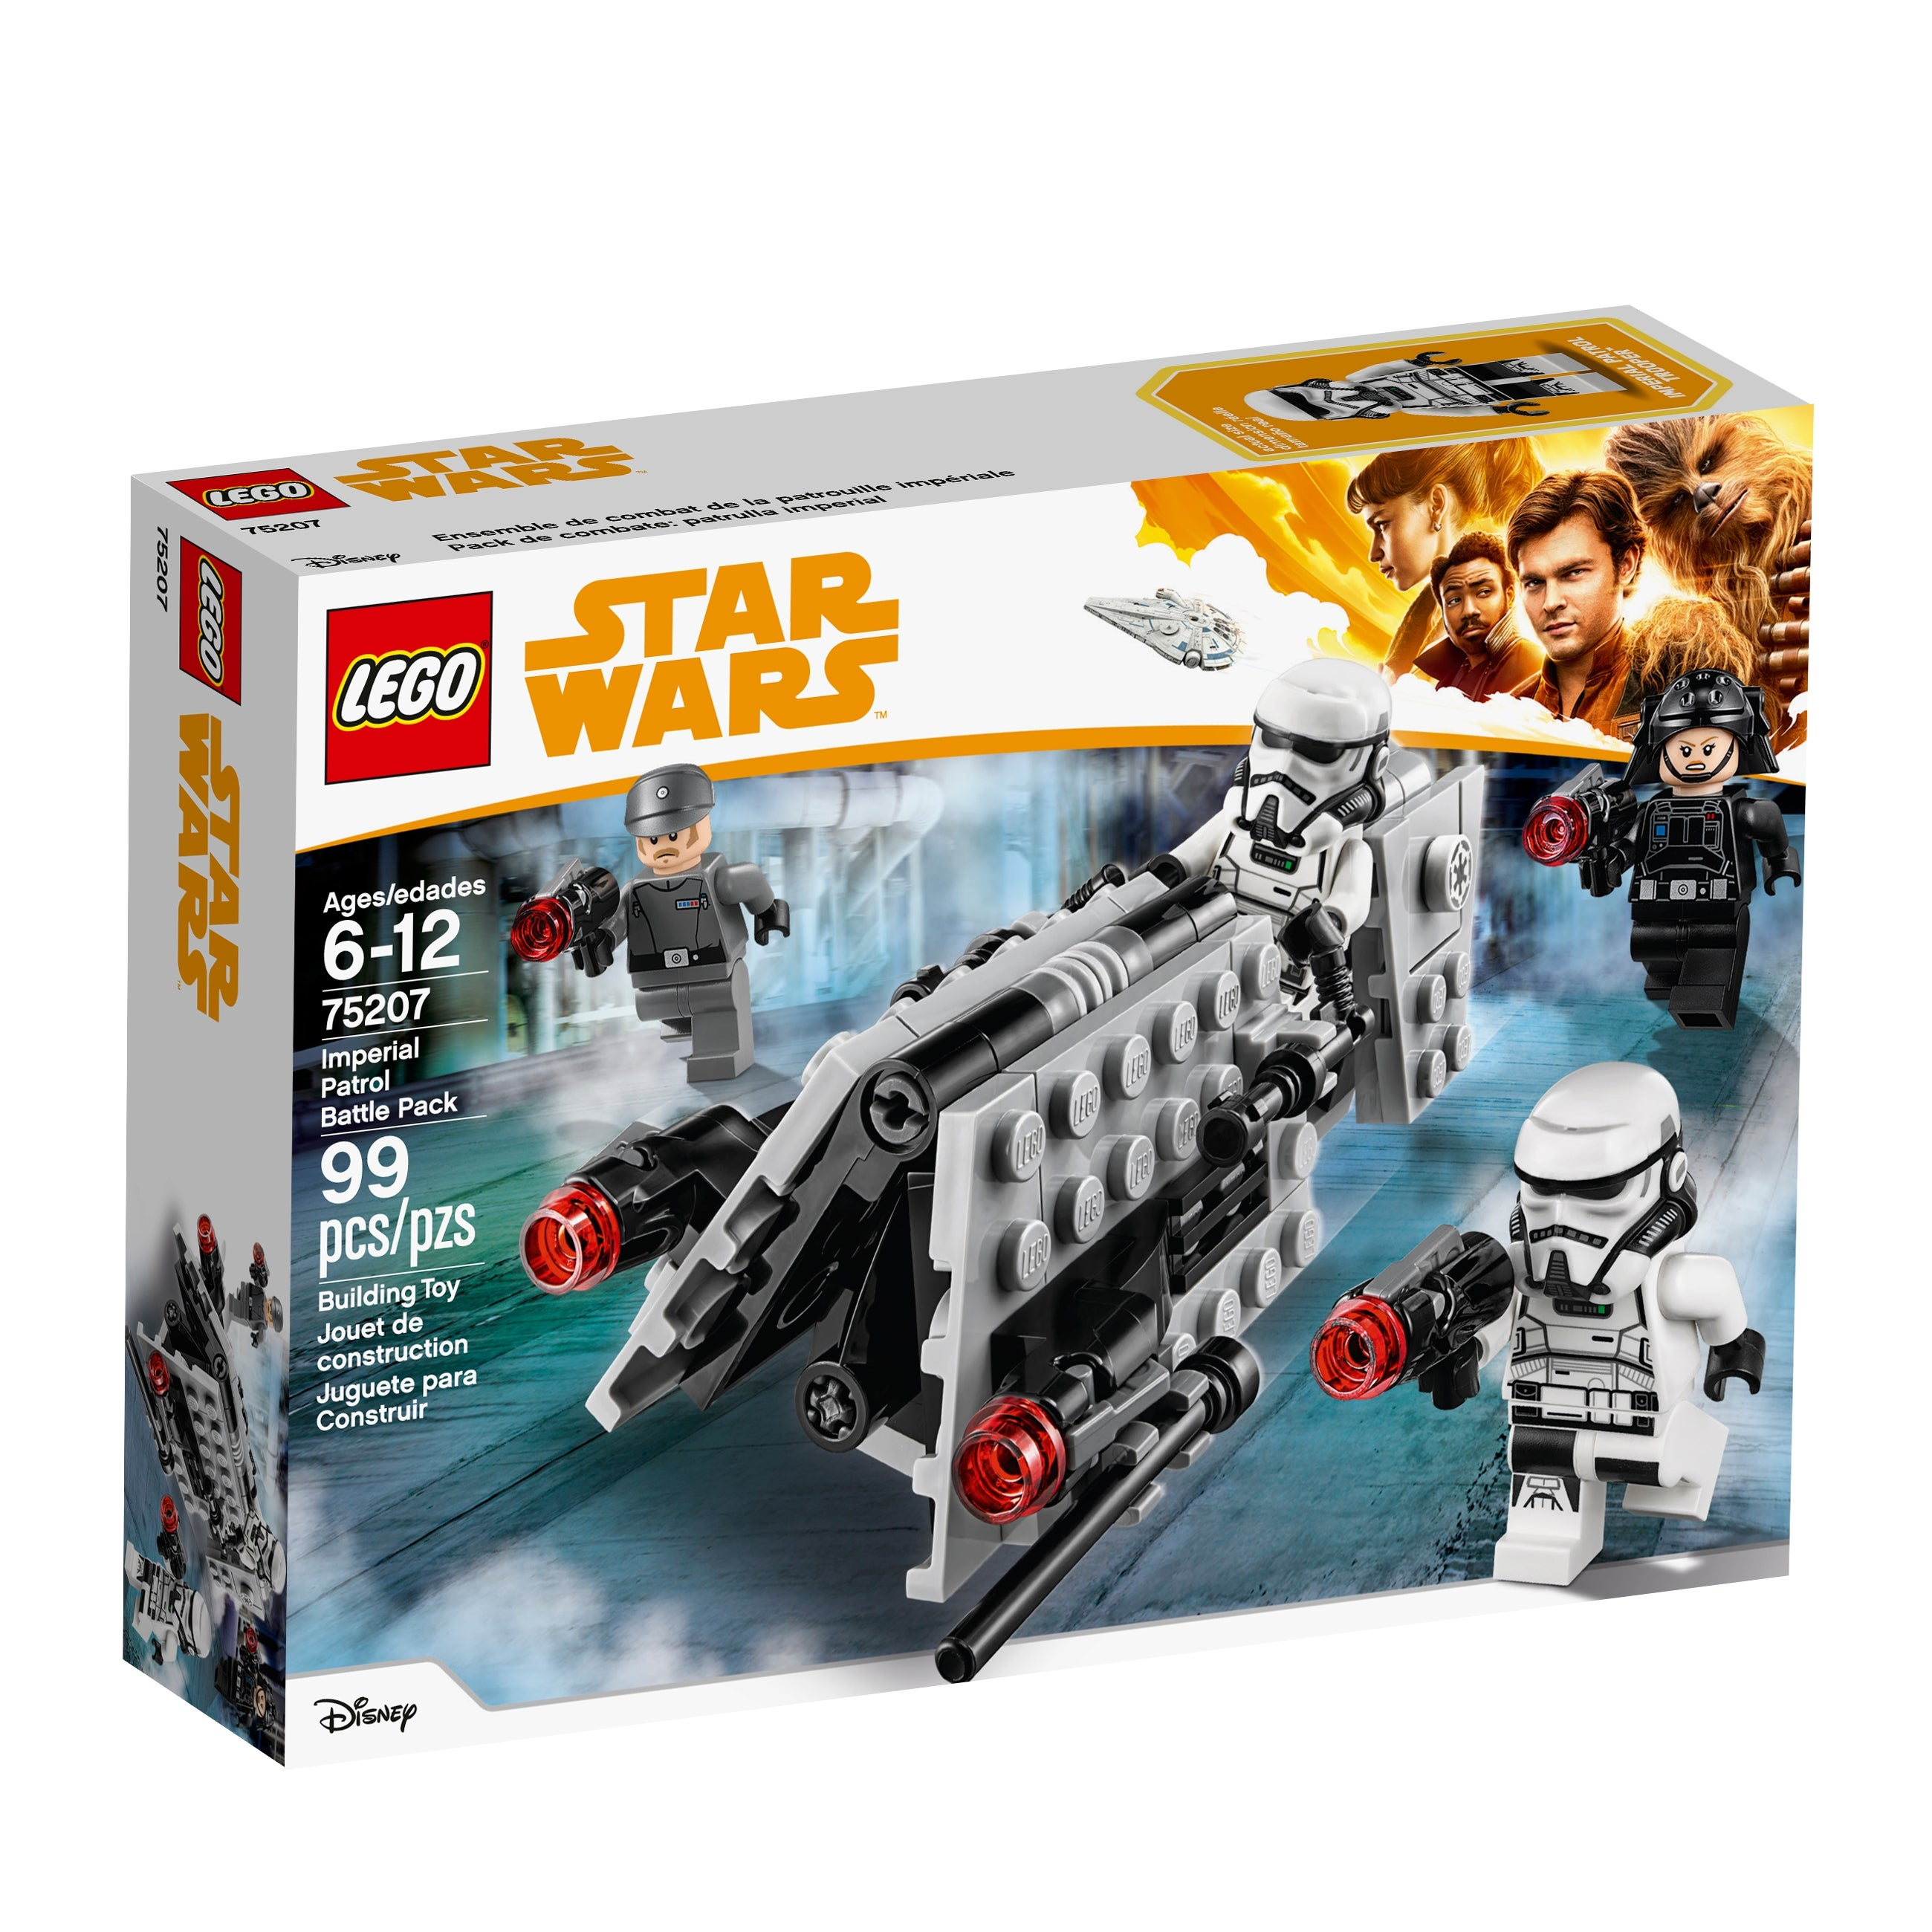 New lego imperial patrol trooper from set 75207 star wars solo sw0914